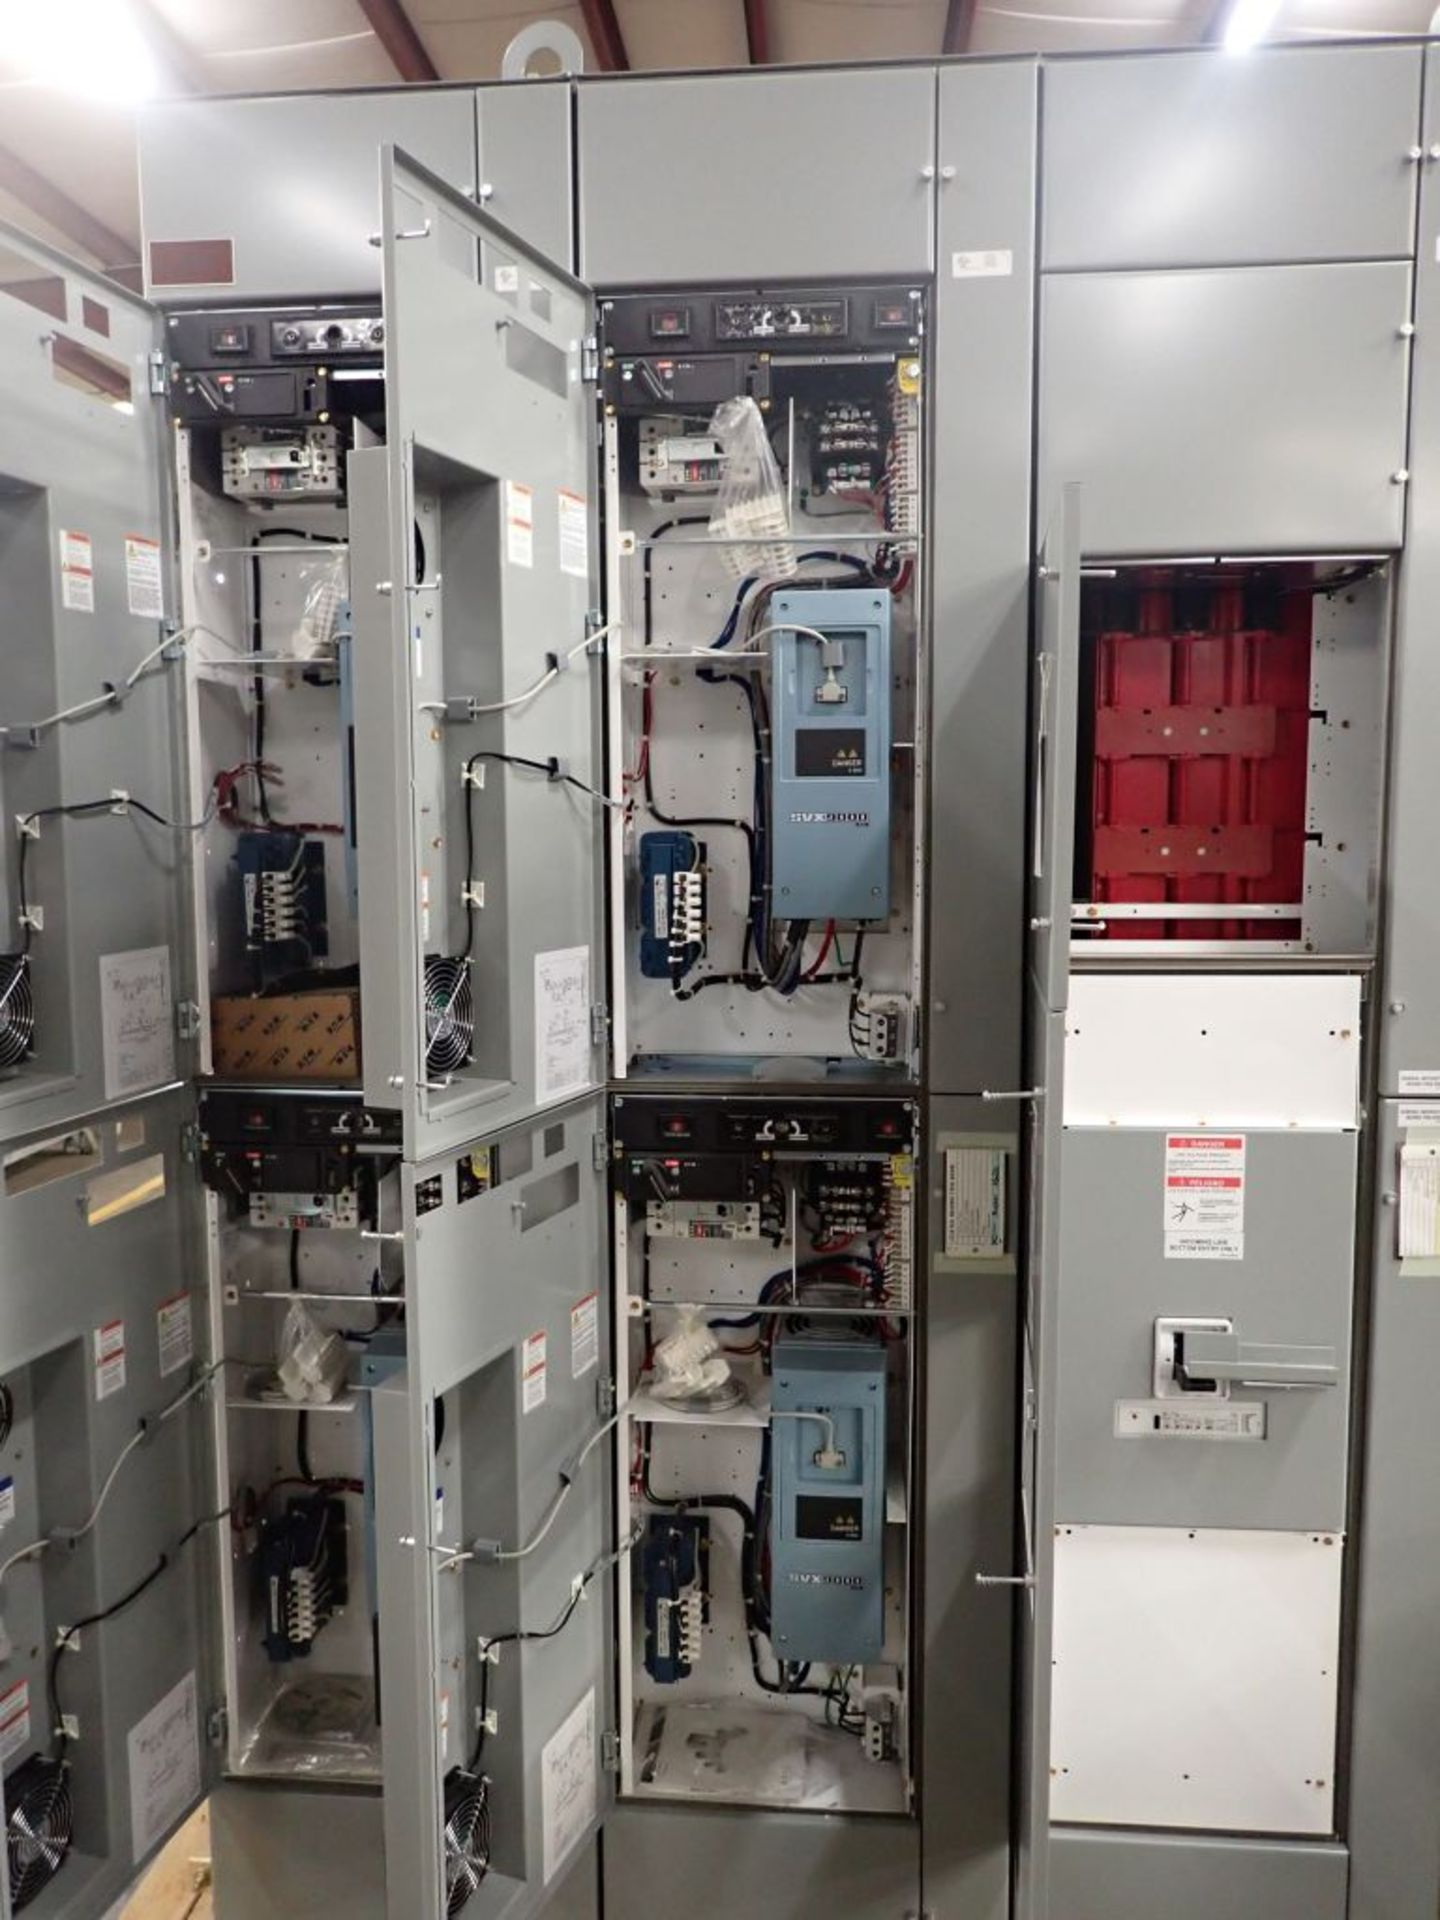 Eaton Freedom 2100 Series Motor Control Center   (4) SVX900-30A, with Eaton AF Drives, SVX9000, - Image 19 of 60